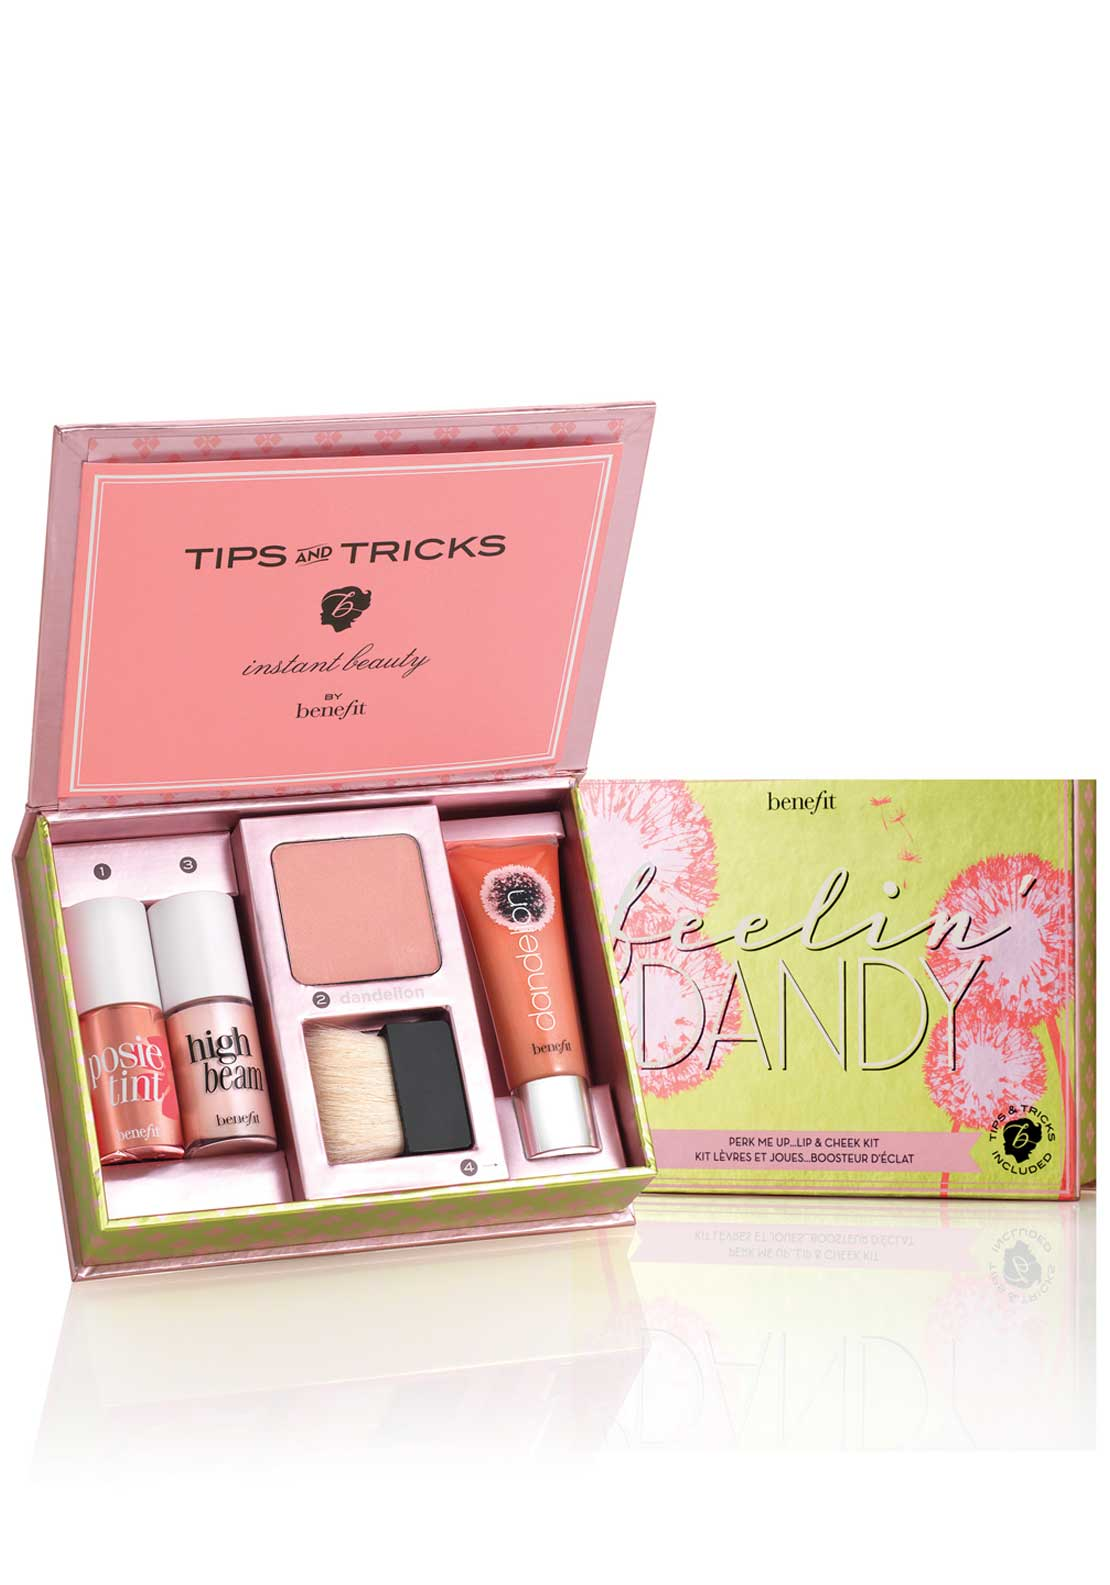 Benefit Feelin' Dandy Perk Me Up Lip and Cheek Kit